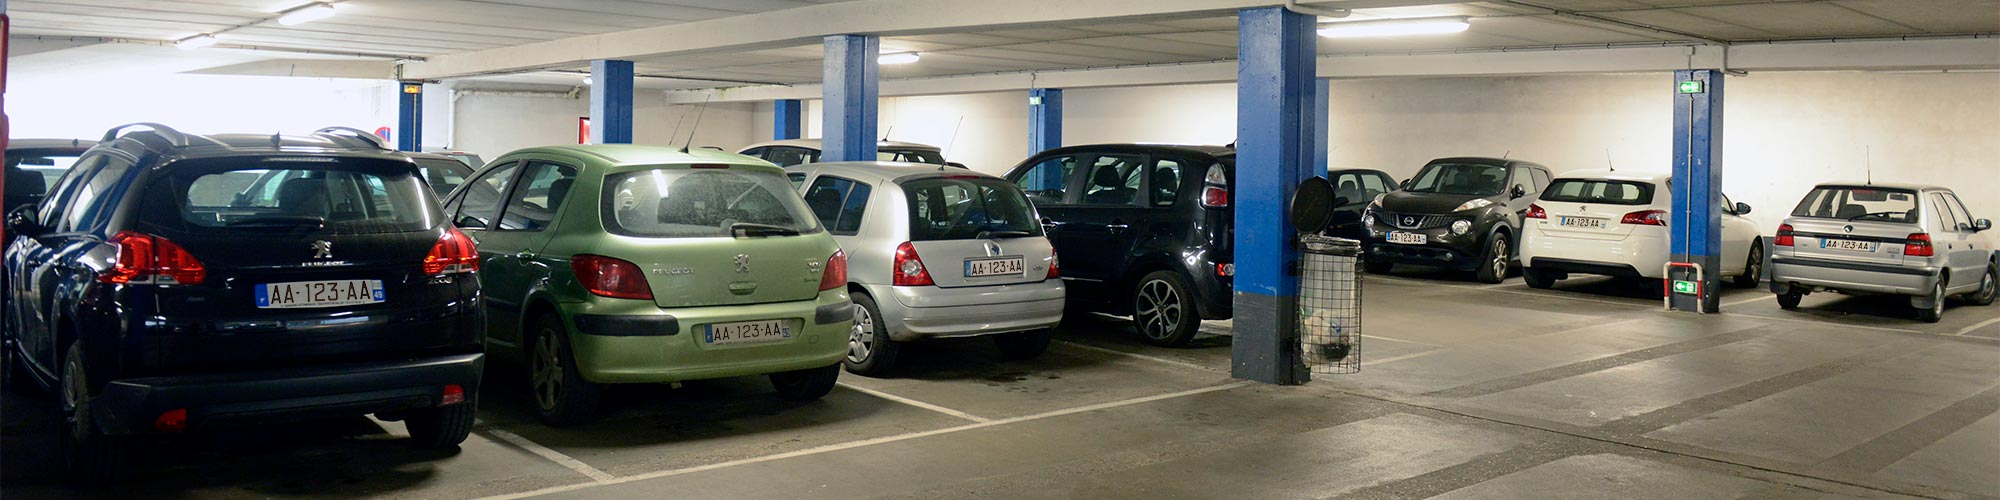 Parking Bressigny Angers